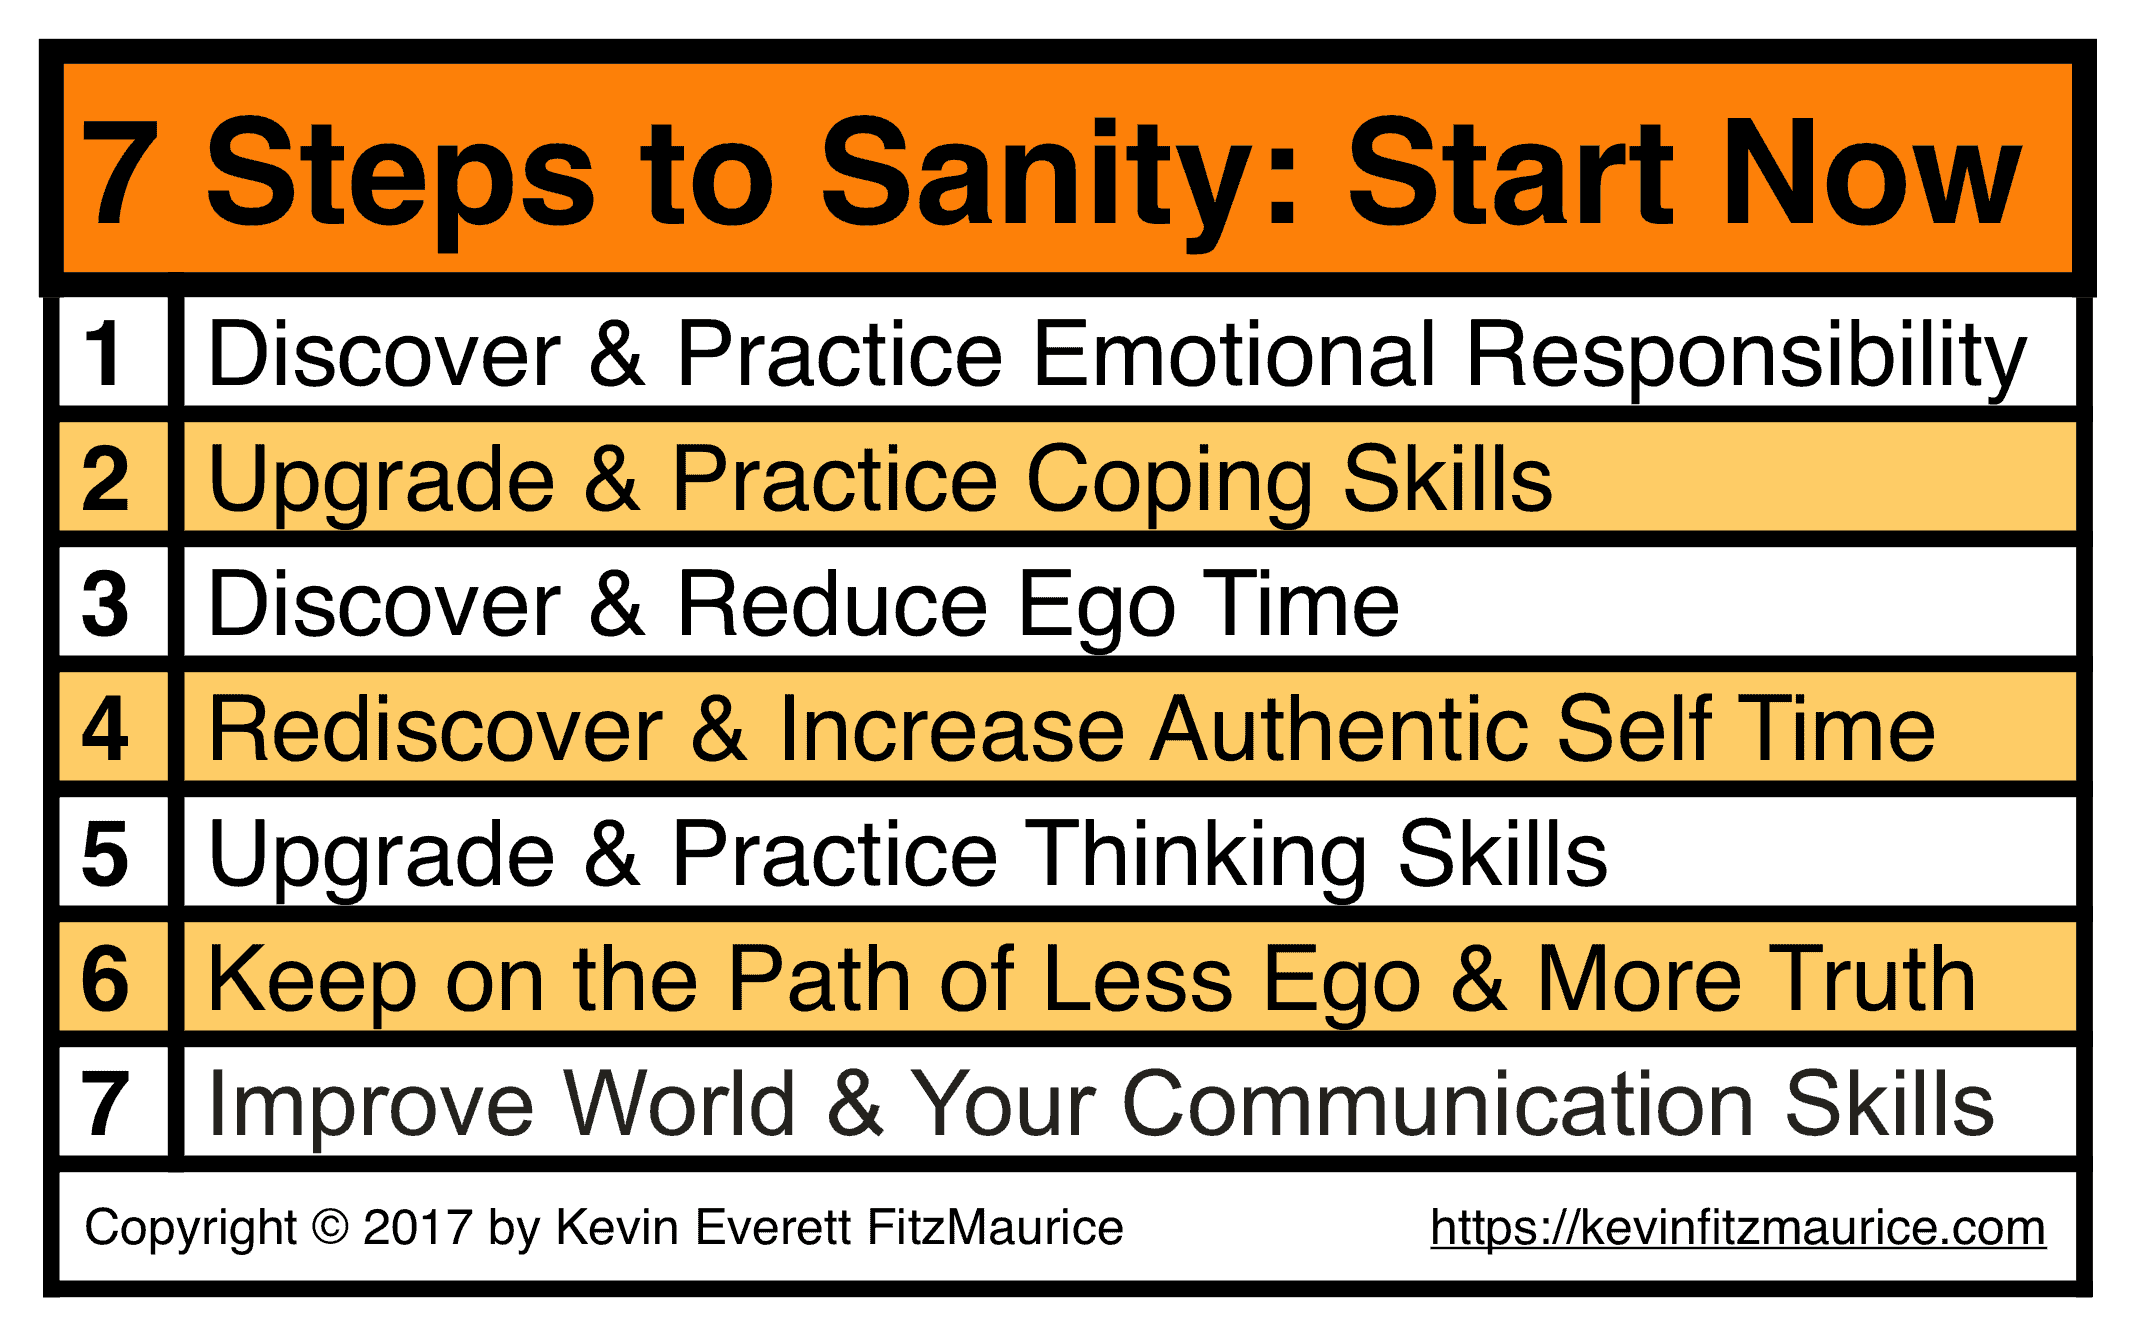 7 Steps to Sanity